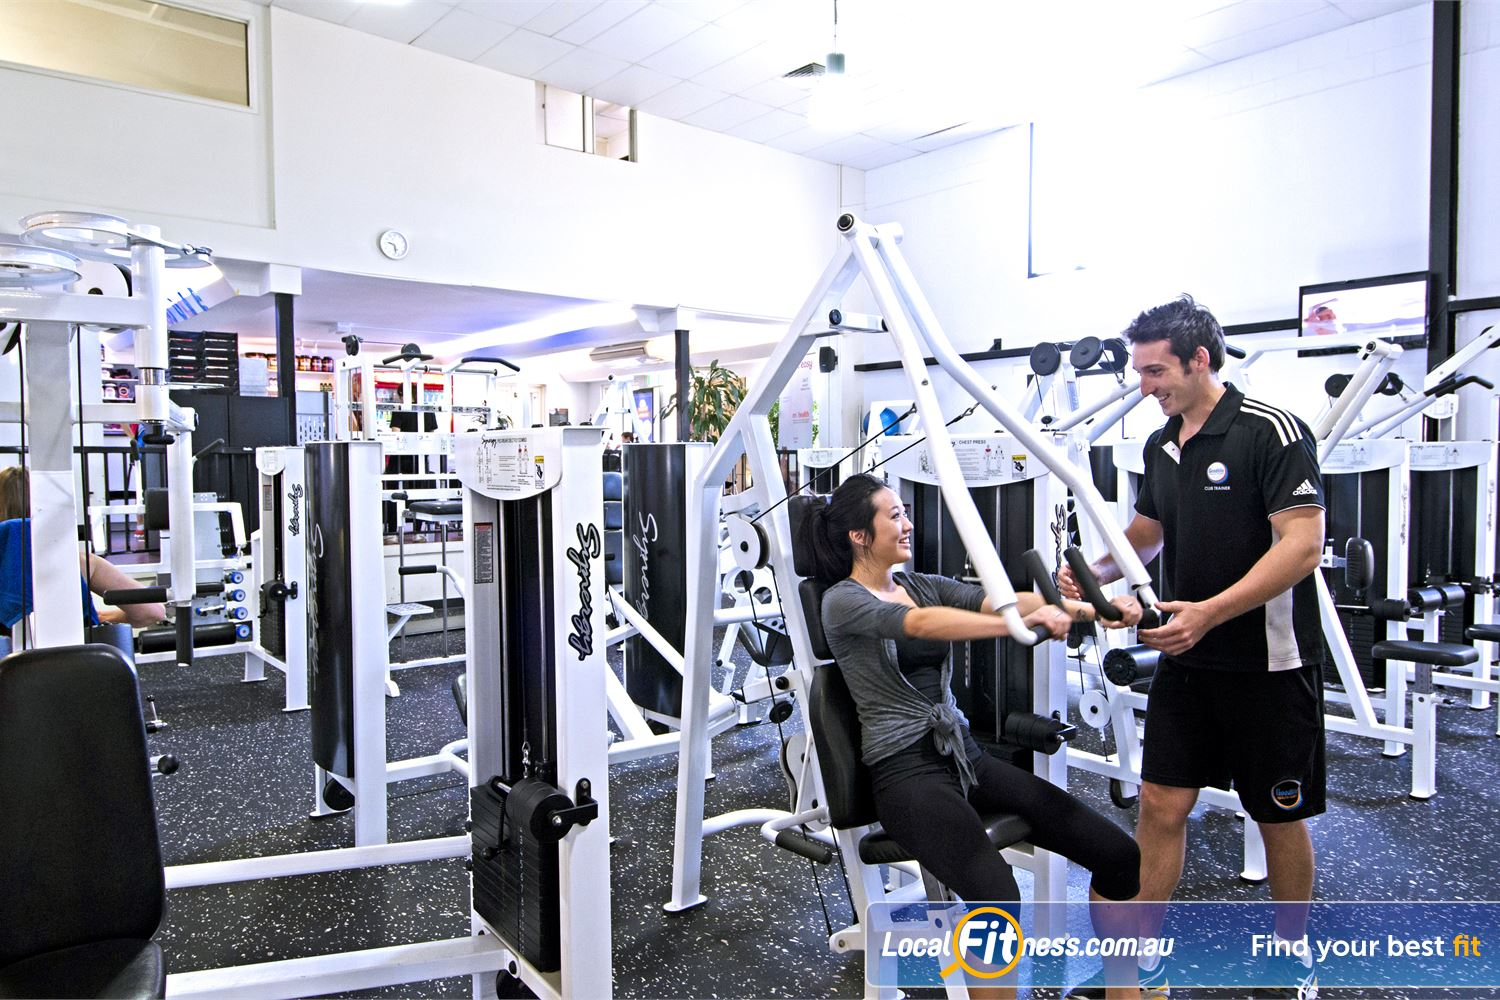 Goodlife Health Clubs Graceville Our team of Graceville gym instructors can help monitor your strength training.